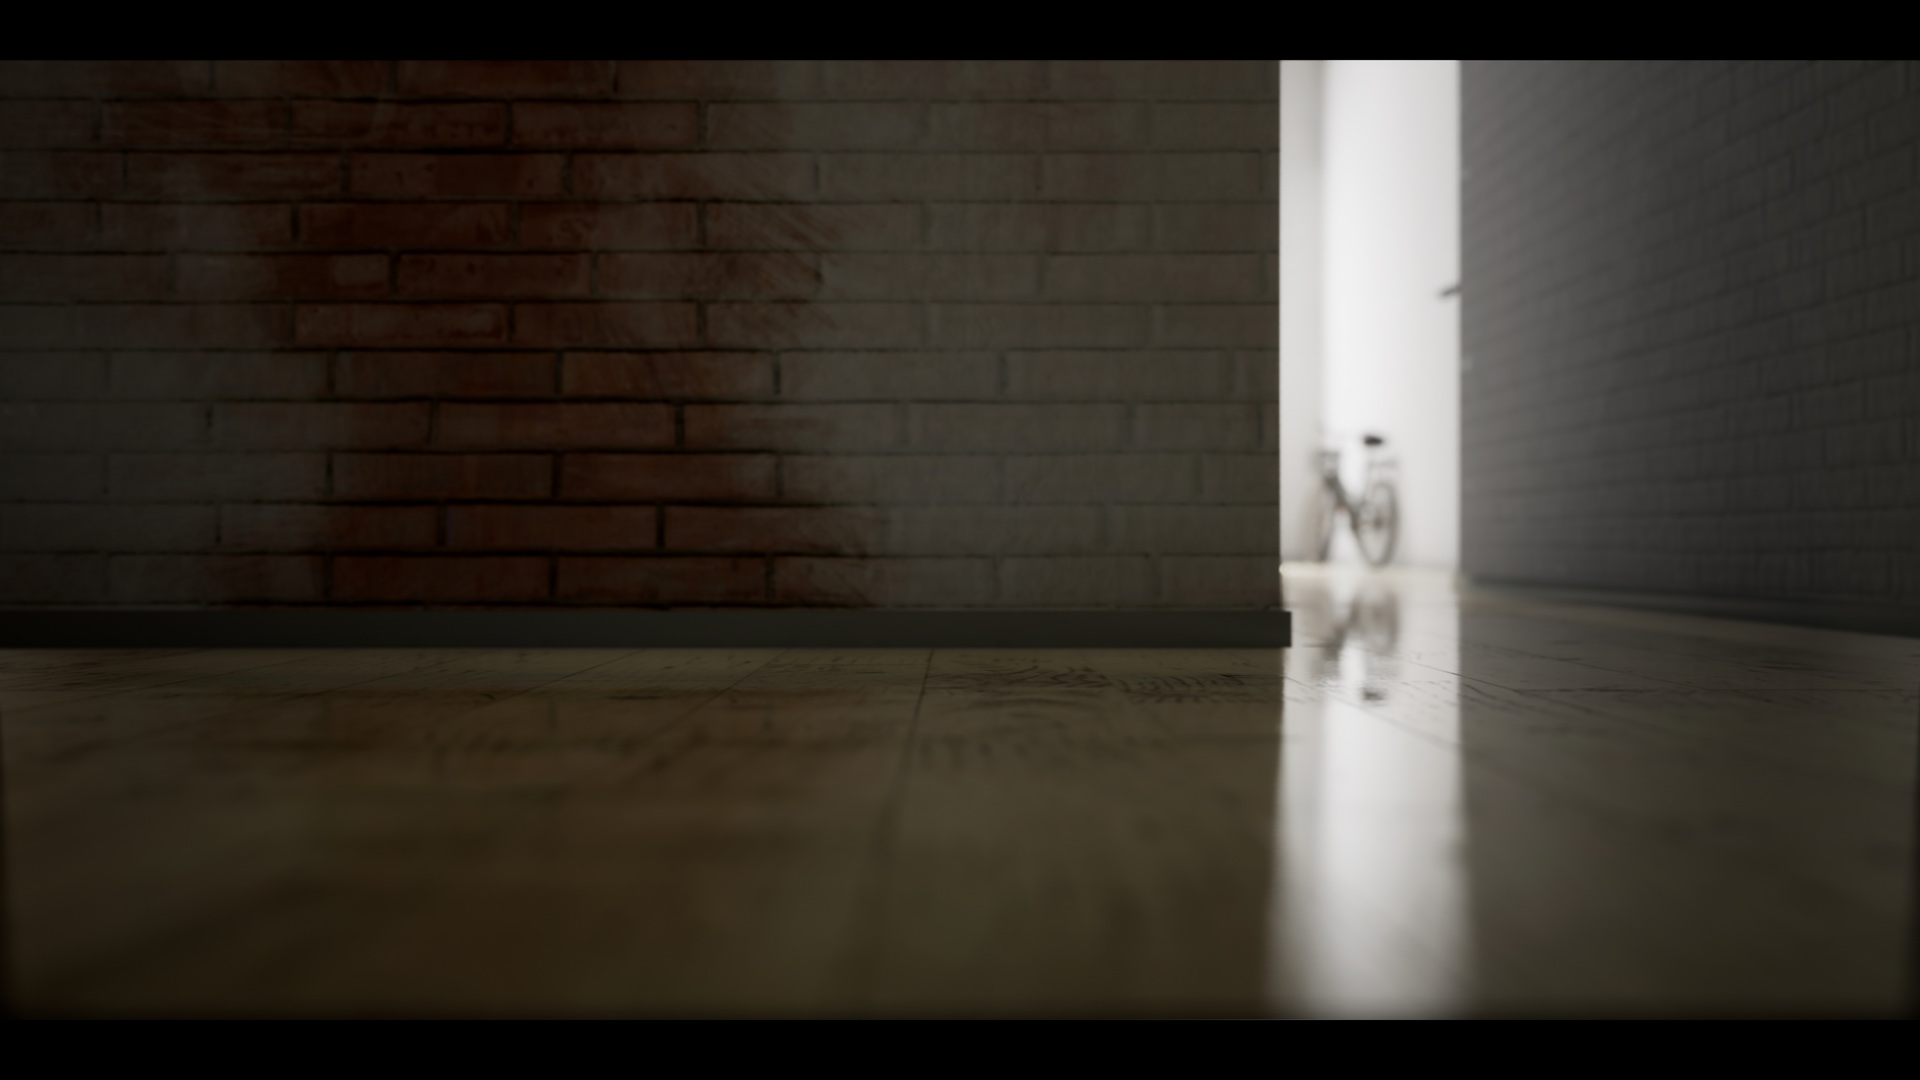 faded UE4 avocad studio